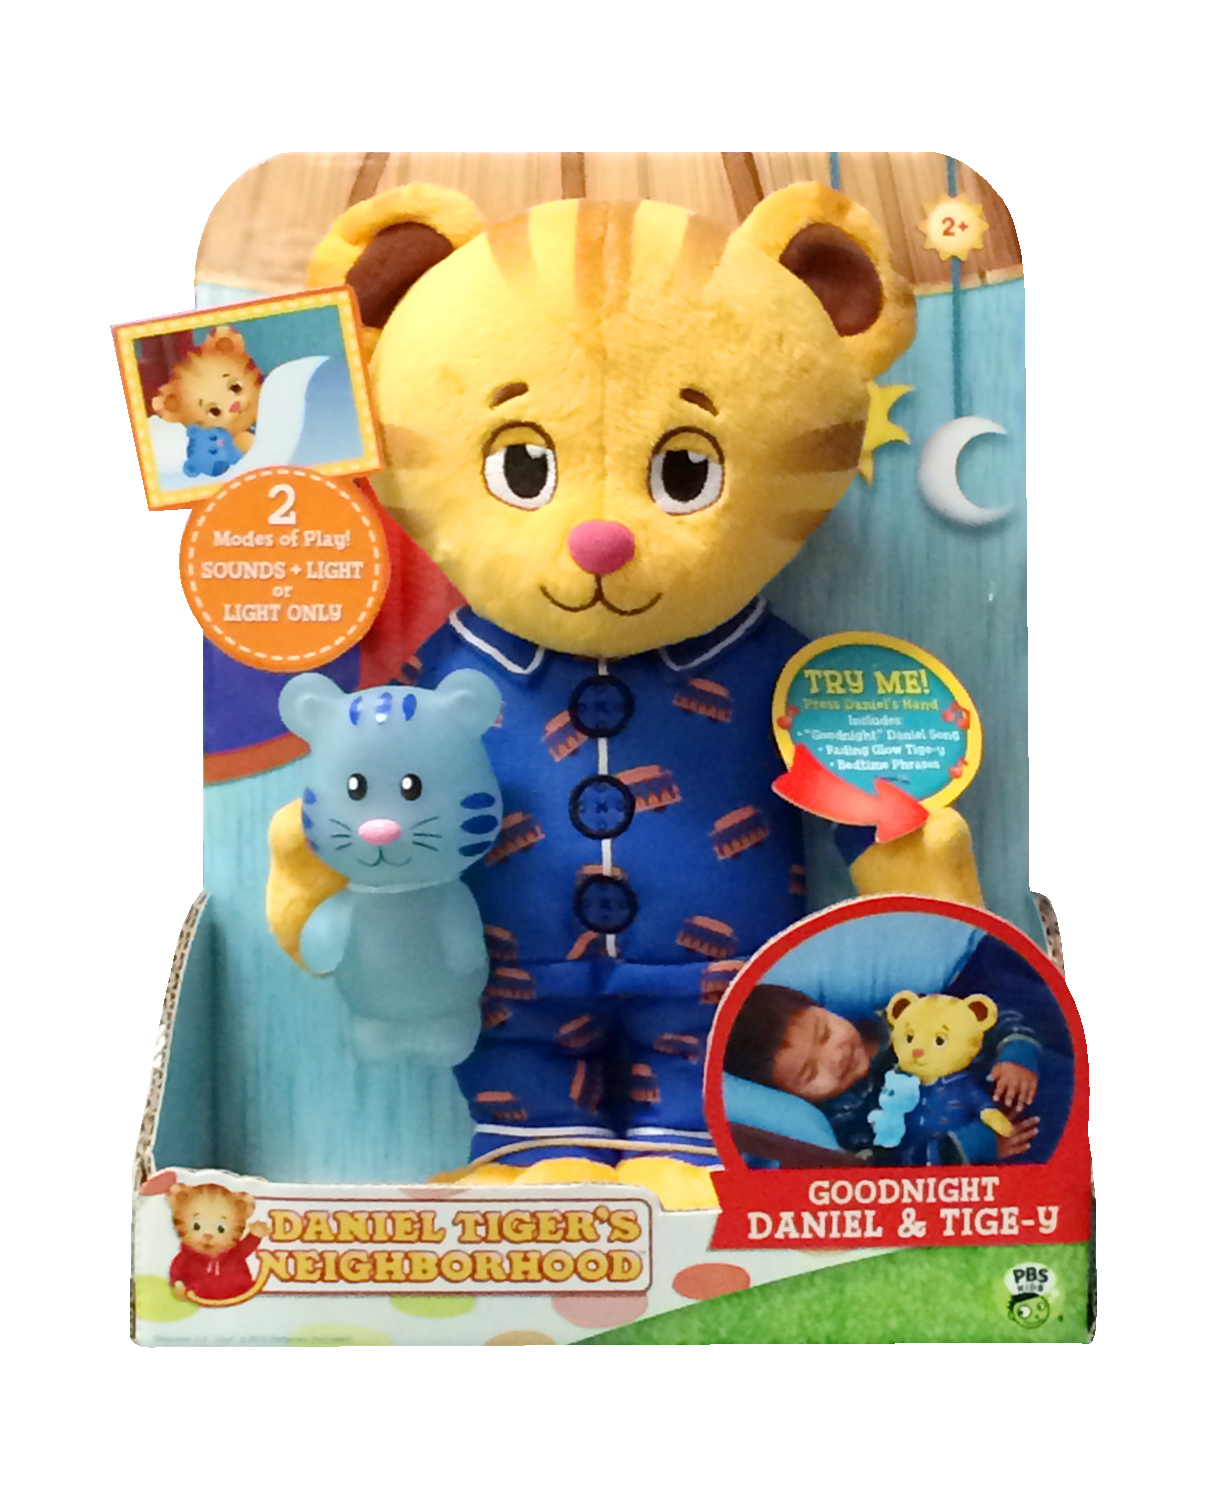 Glow Toys For Bedtime Pbs Kids Daniel Tiger 39s Neighborhood Musical Goodnight